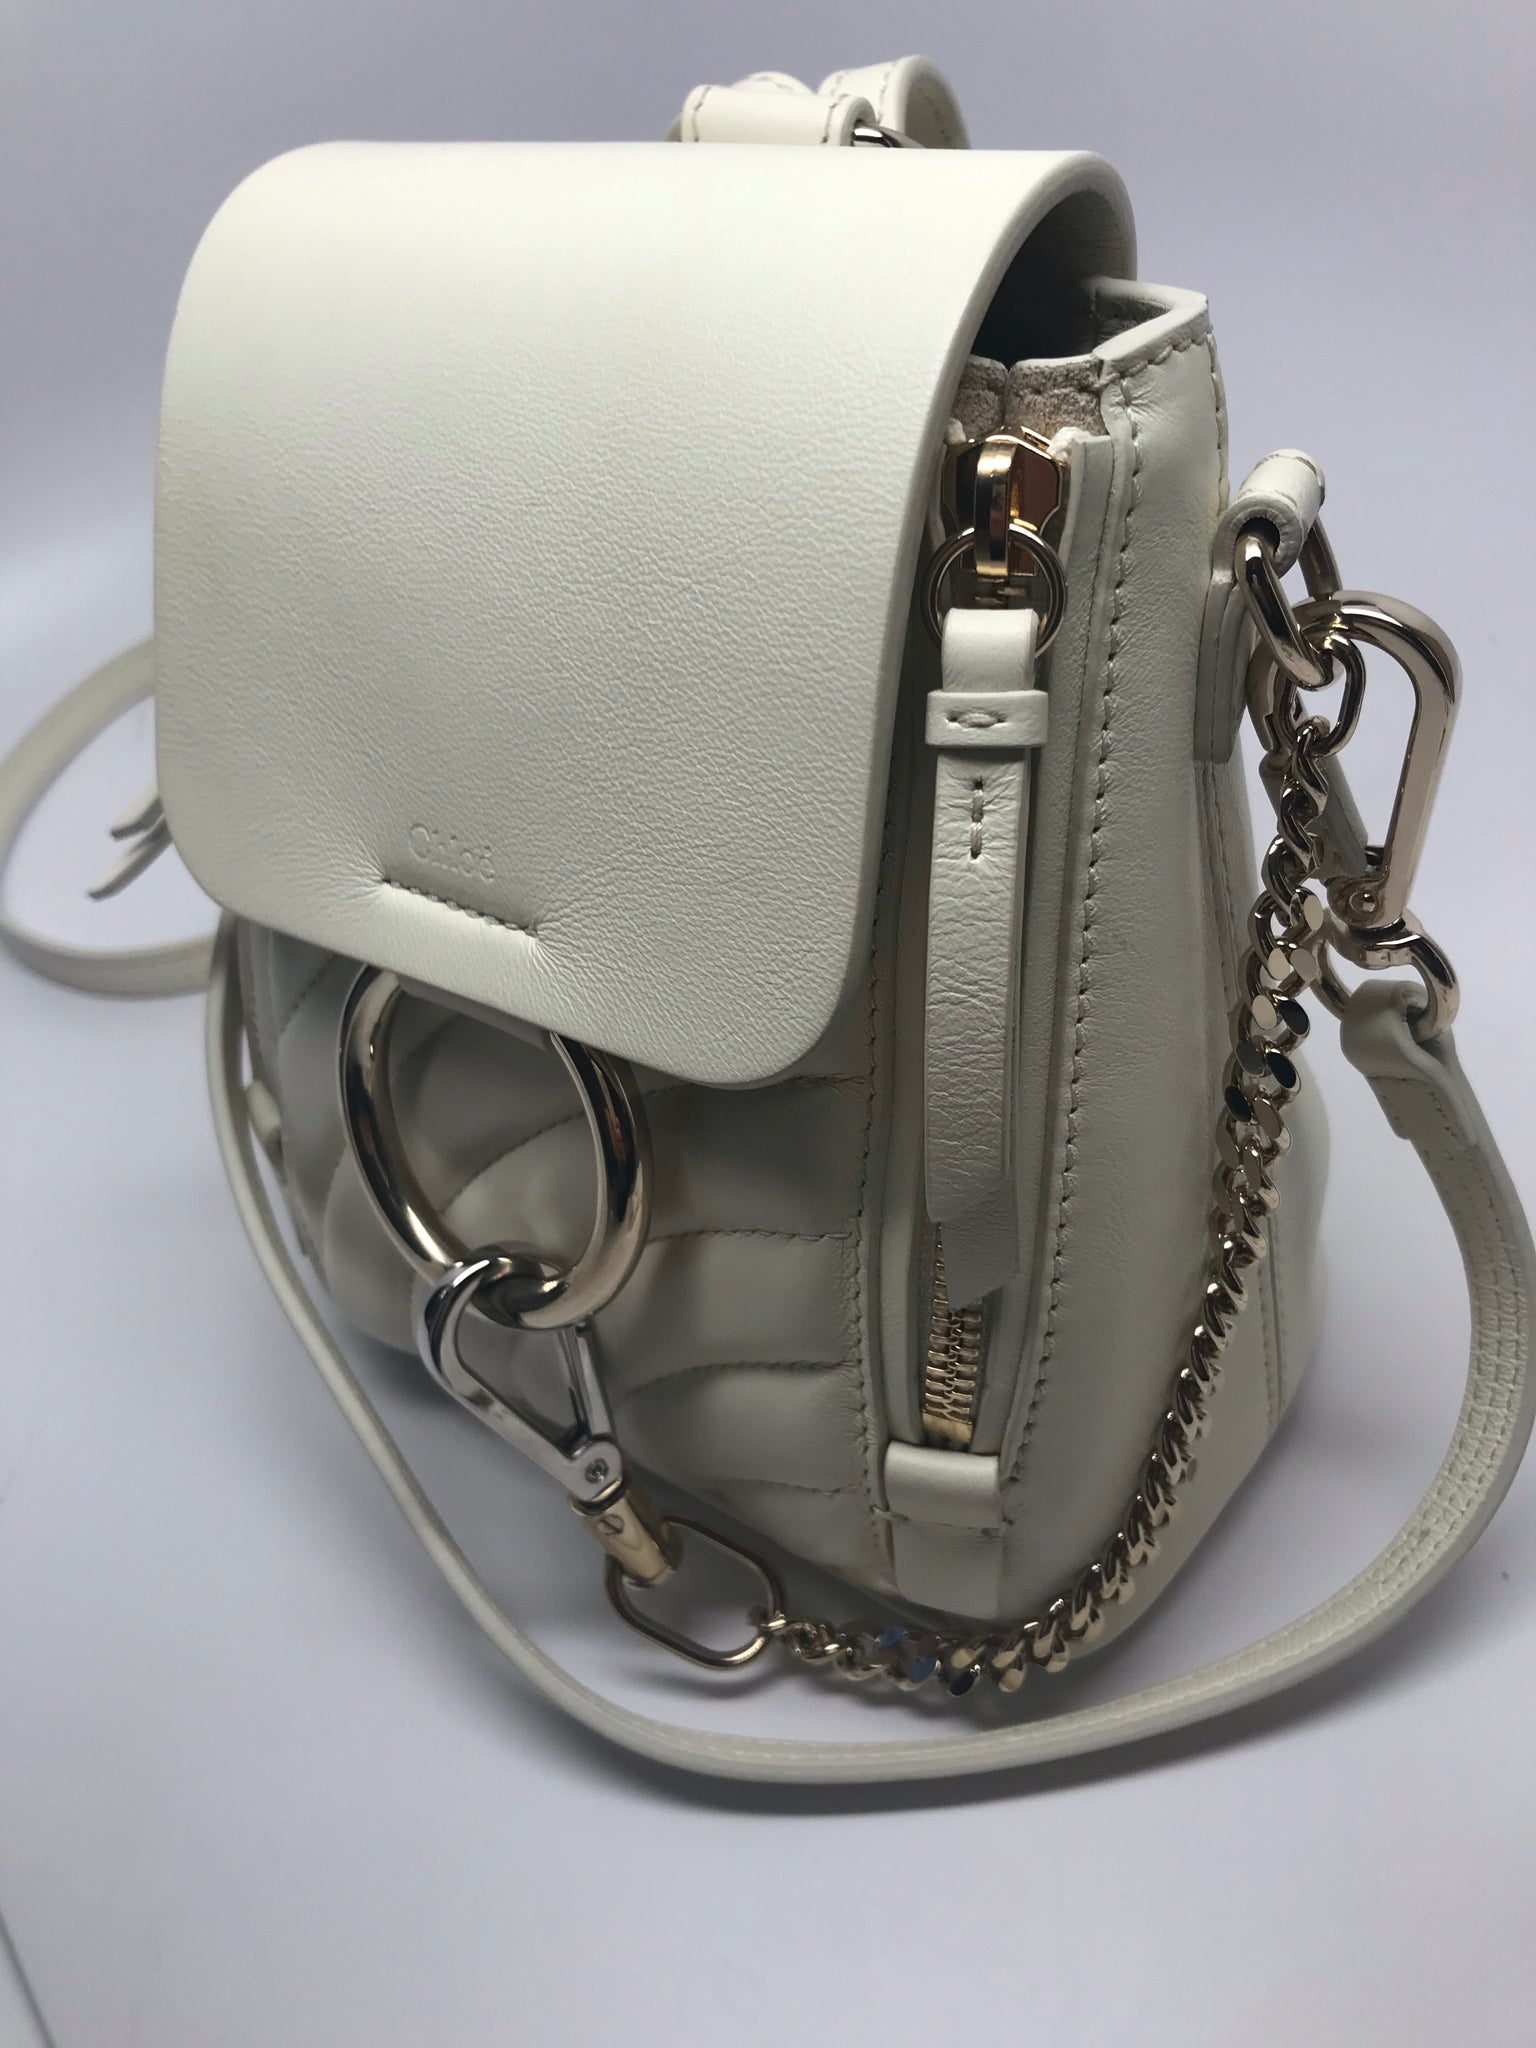 75f58aa1e5 CHLOÉ FAYE SMALL BACKPACK SHOULDER BAG - NATURAL WHITE – Hebster ...